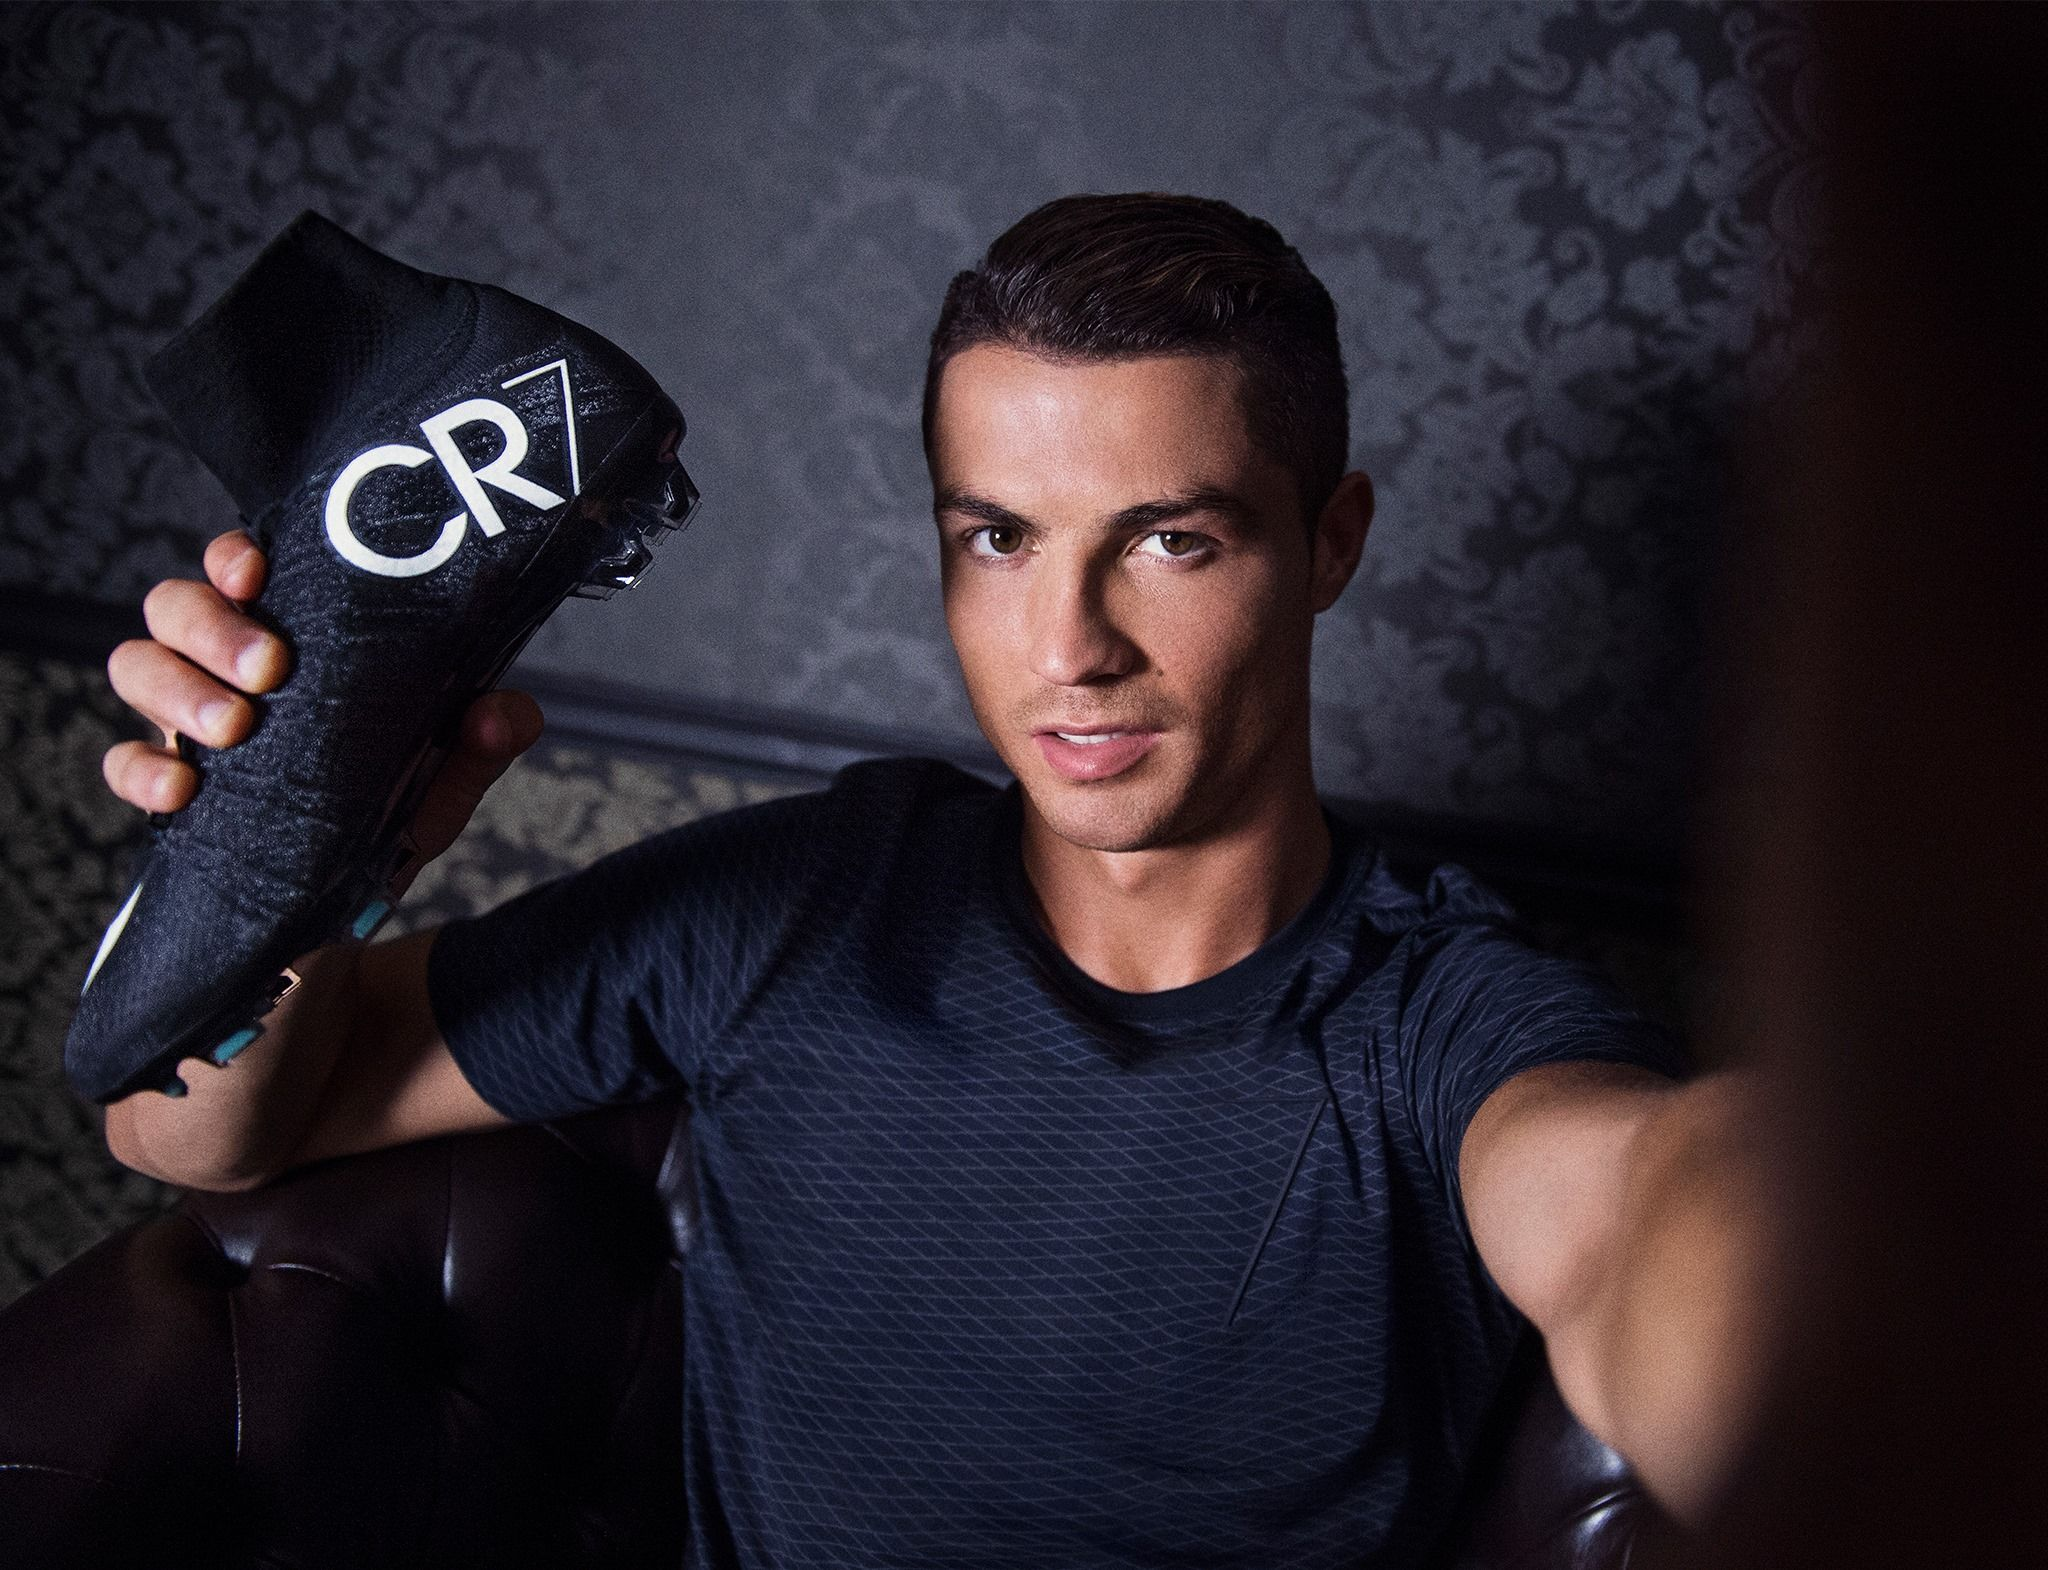 Nike Mercurial Superfly CR7 for Cristiano Ronaldo | Royal Fashionist